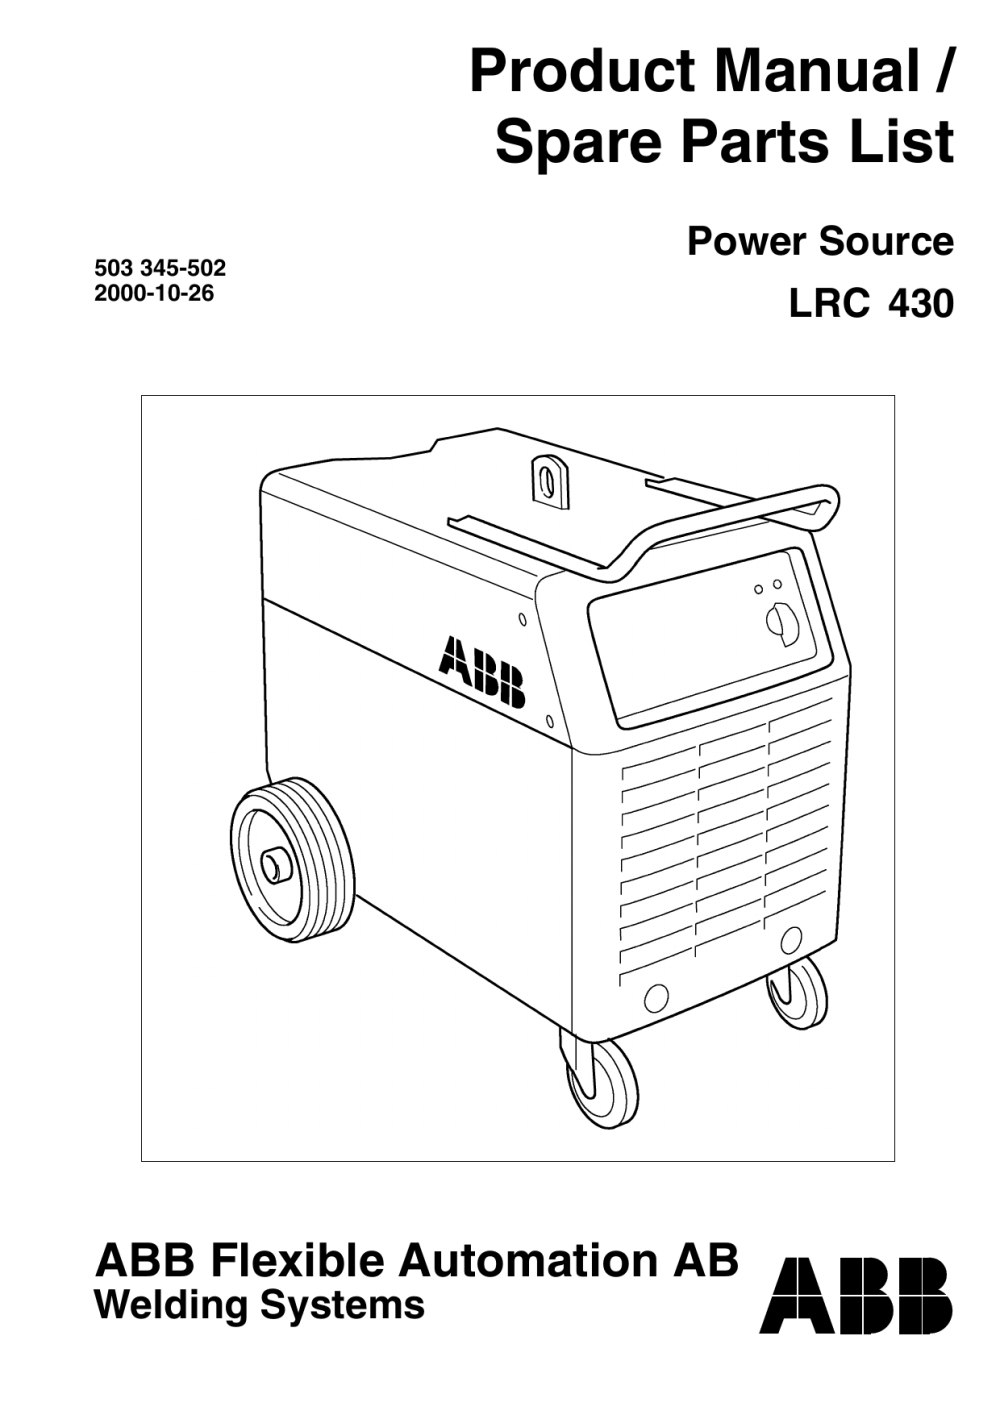 medium resolution of product manual spare parts list power source lrc 430